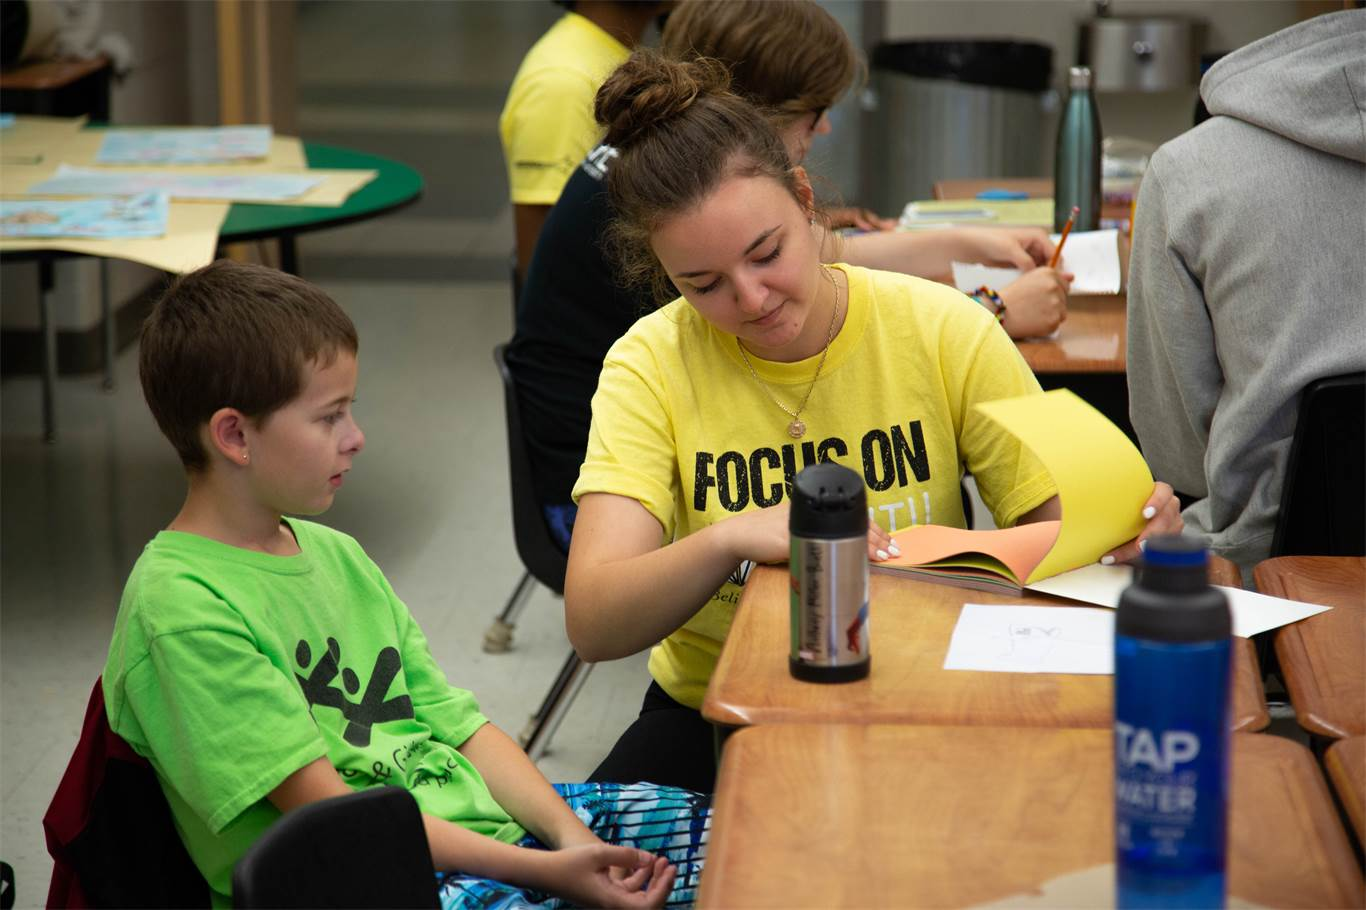 Cultural Arts camp kicks off Focus on Youth